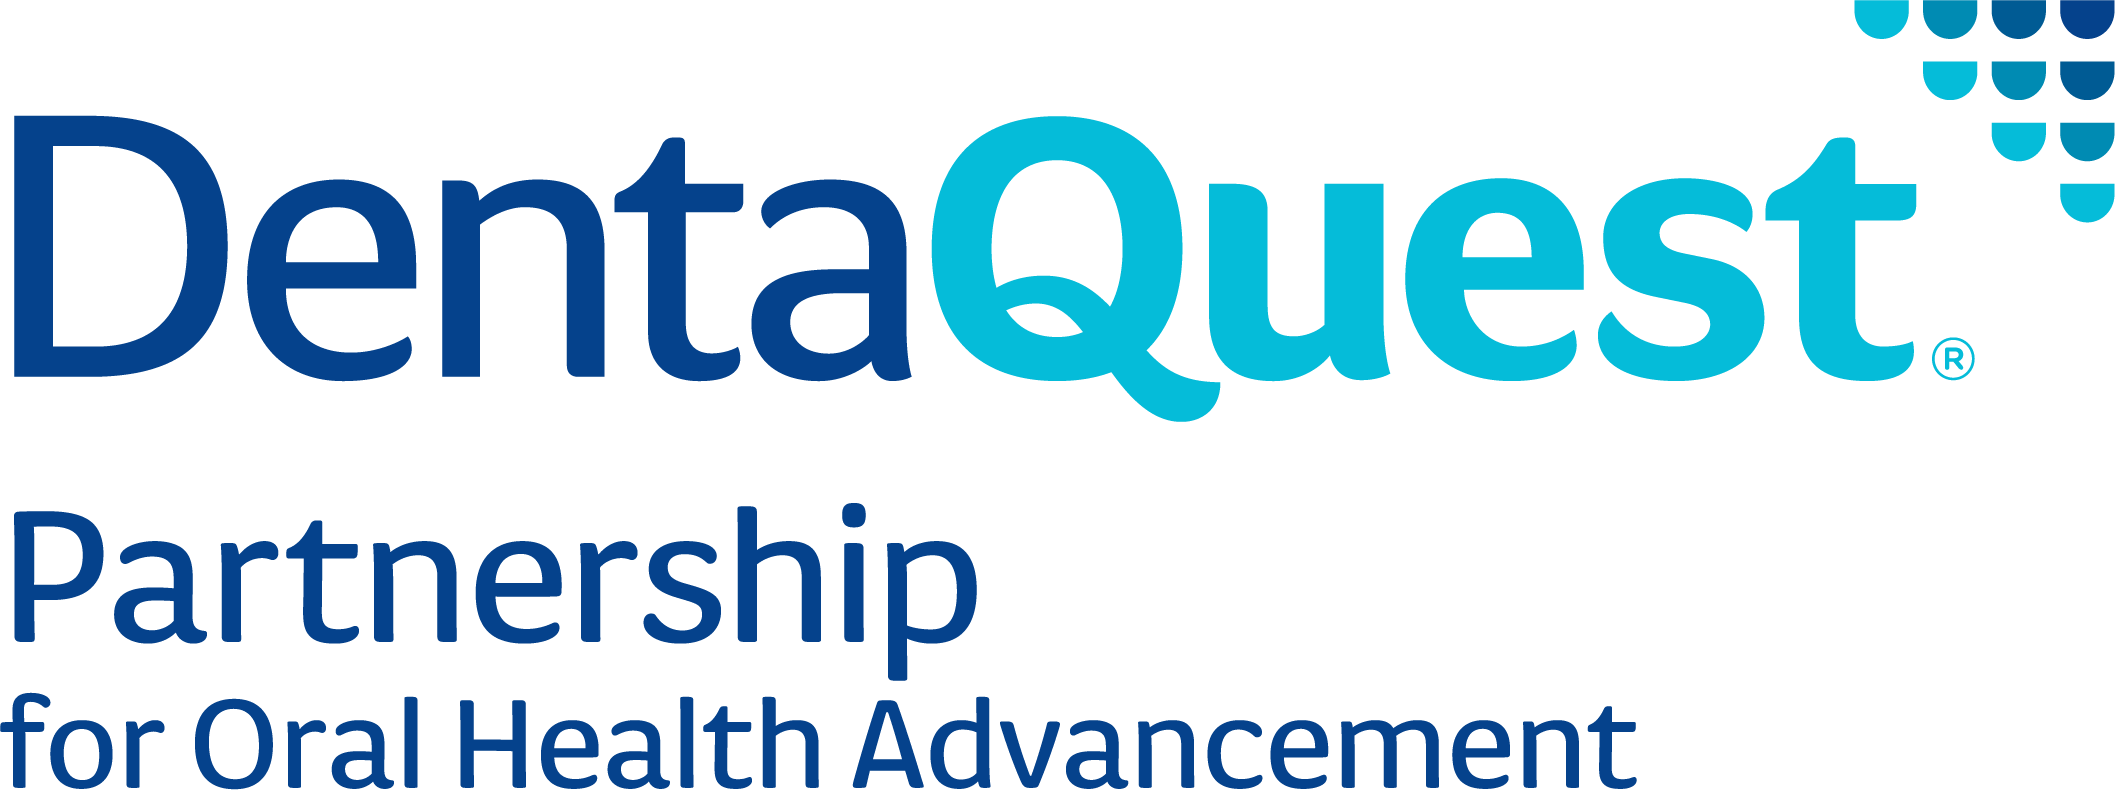 DentaQuest Partnership for oral health advancement